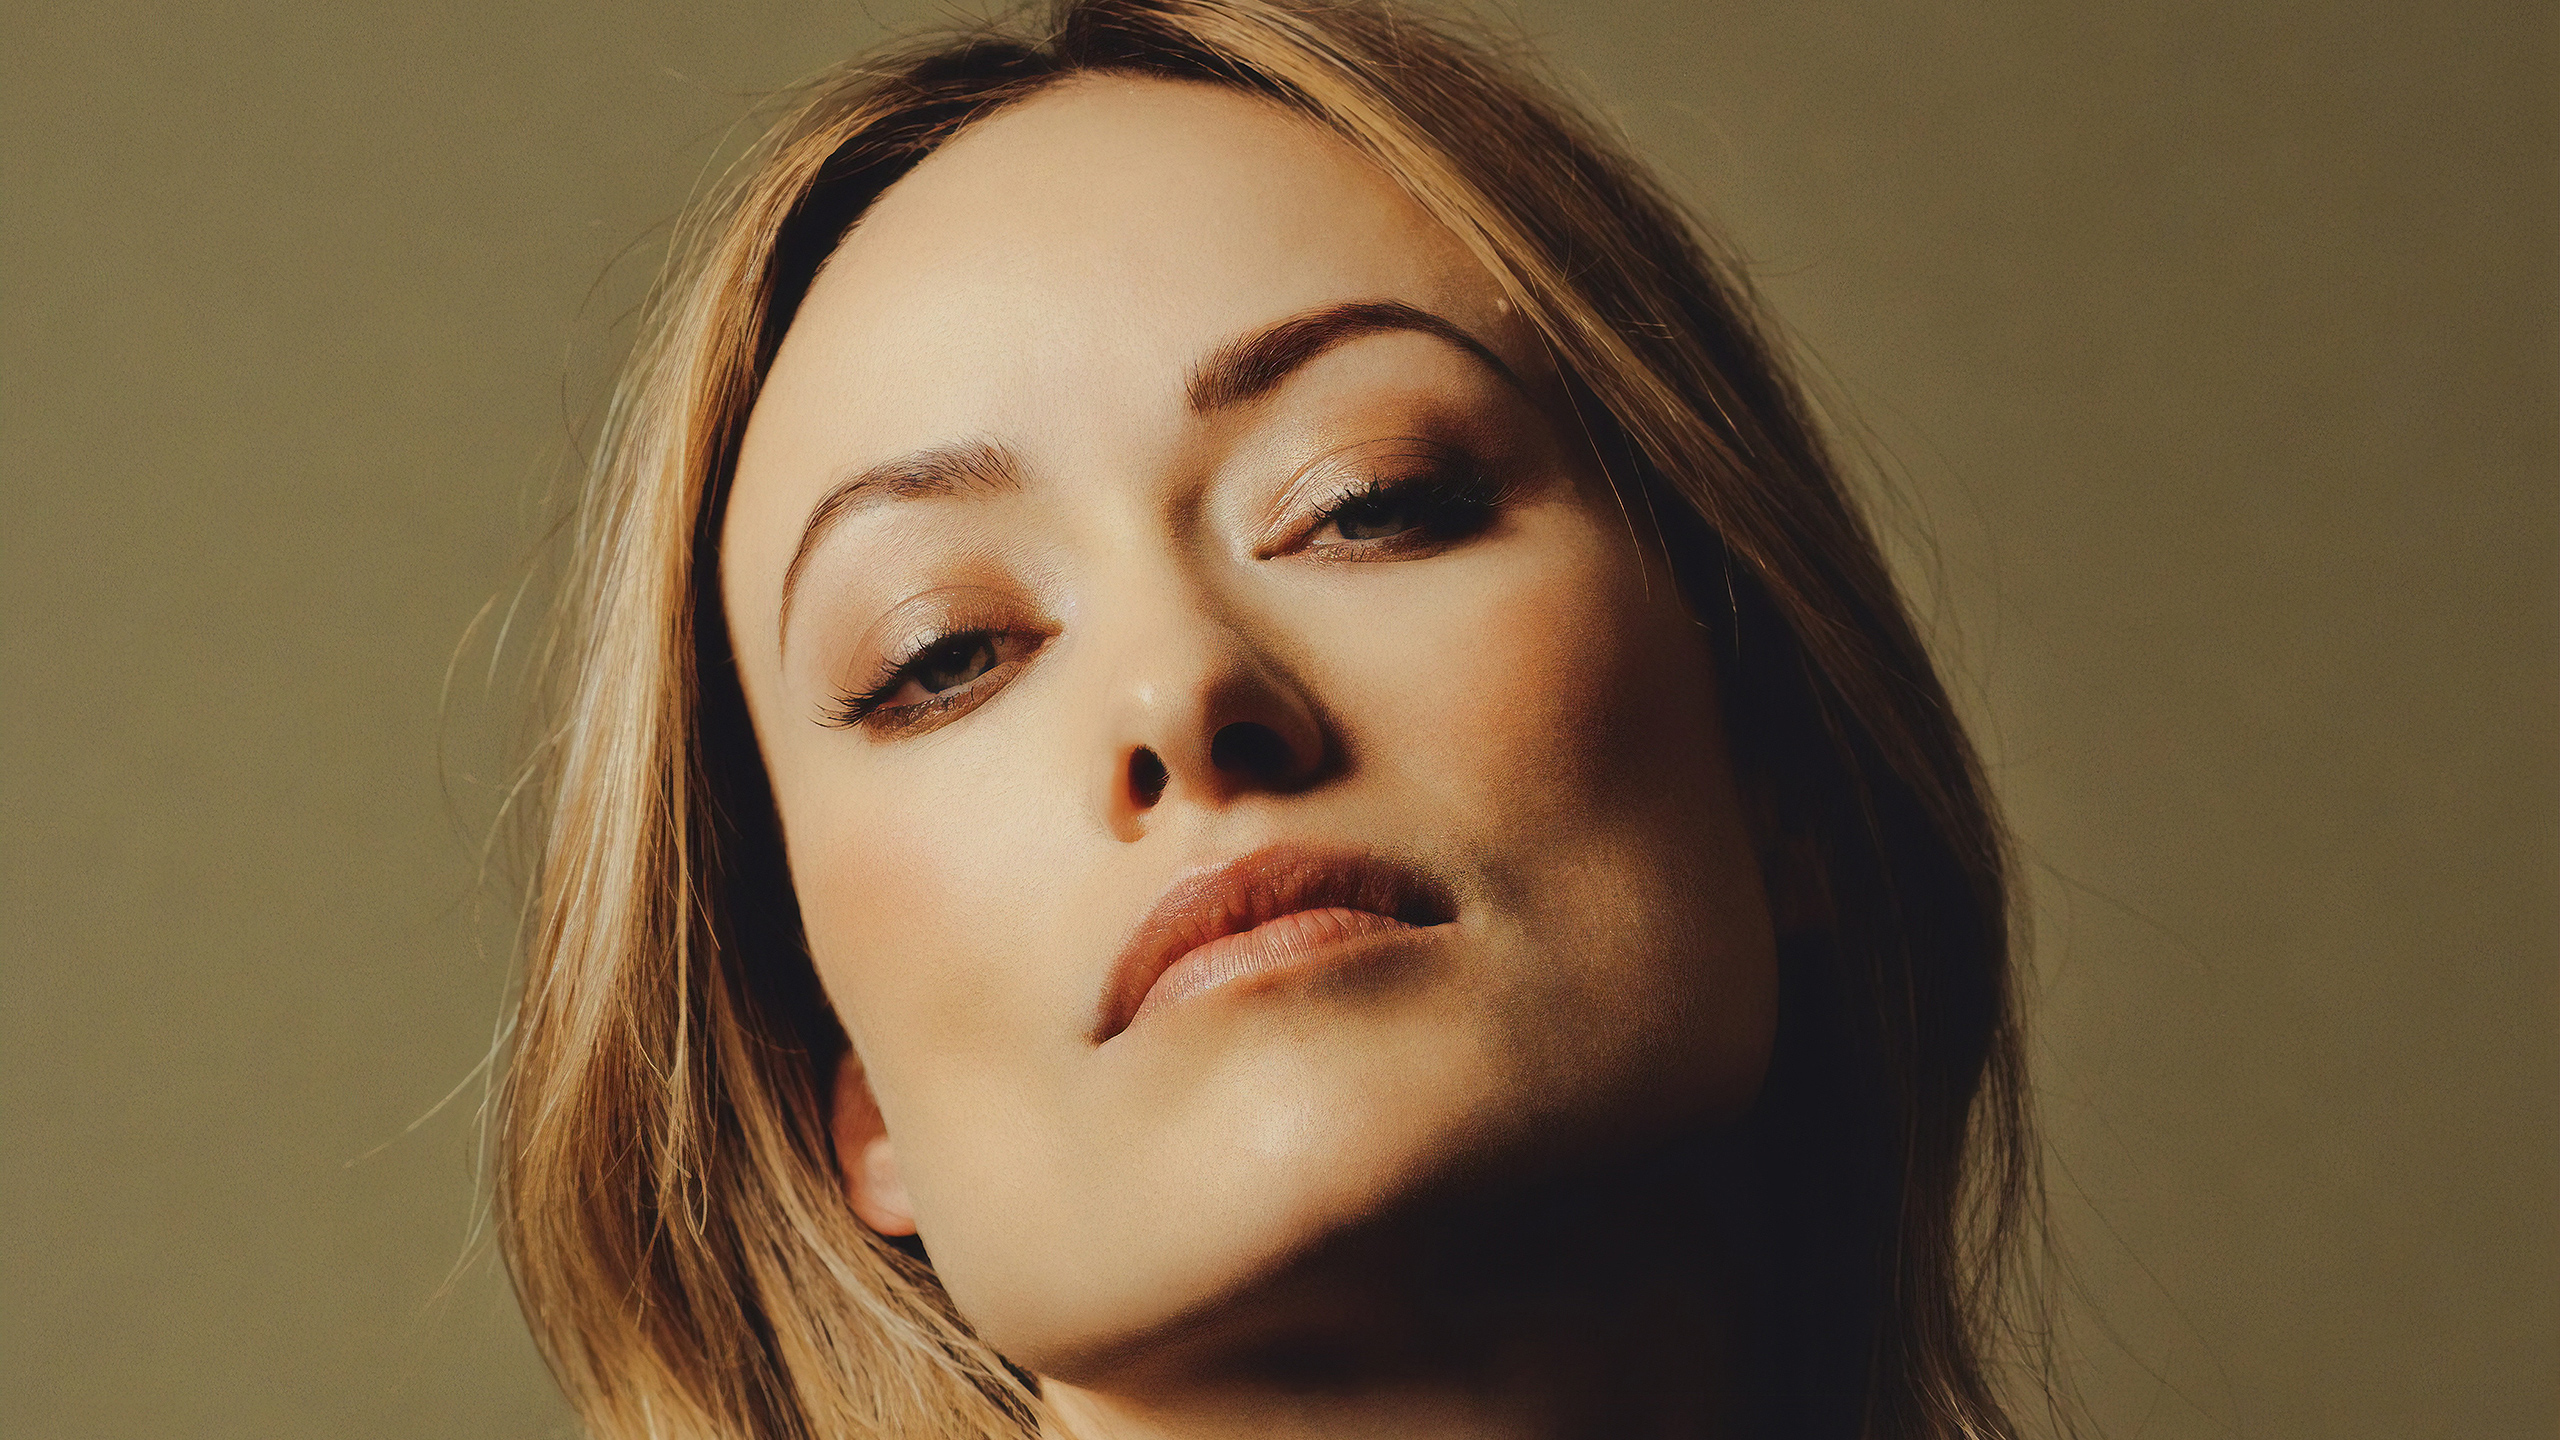 Top 51 Olivia Wilde HD Photos And Wallpapers Free Download